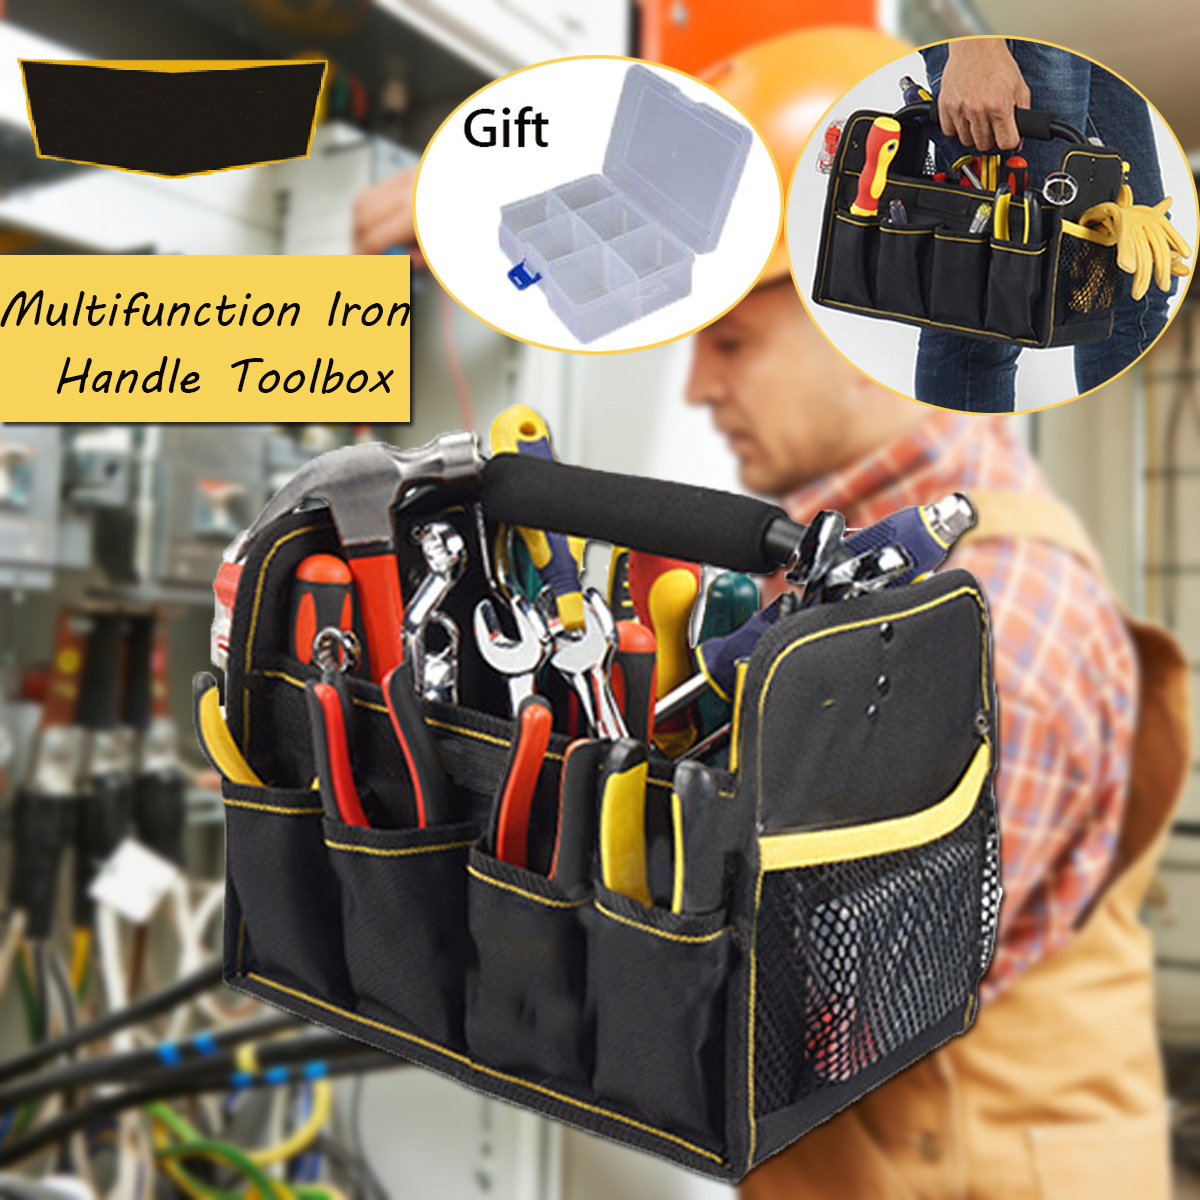 27 Bags Large Capacity Electrician Tools Bag Oxford Cloth Waterproof Single Shoulder Multifunction Repair Tool Organizers 27 bags large capacity electrician oxford tools bag waterproof single shoulder multifunction repair thicken instrument case